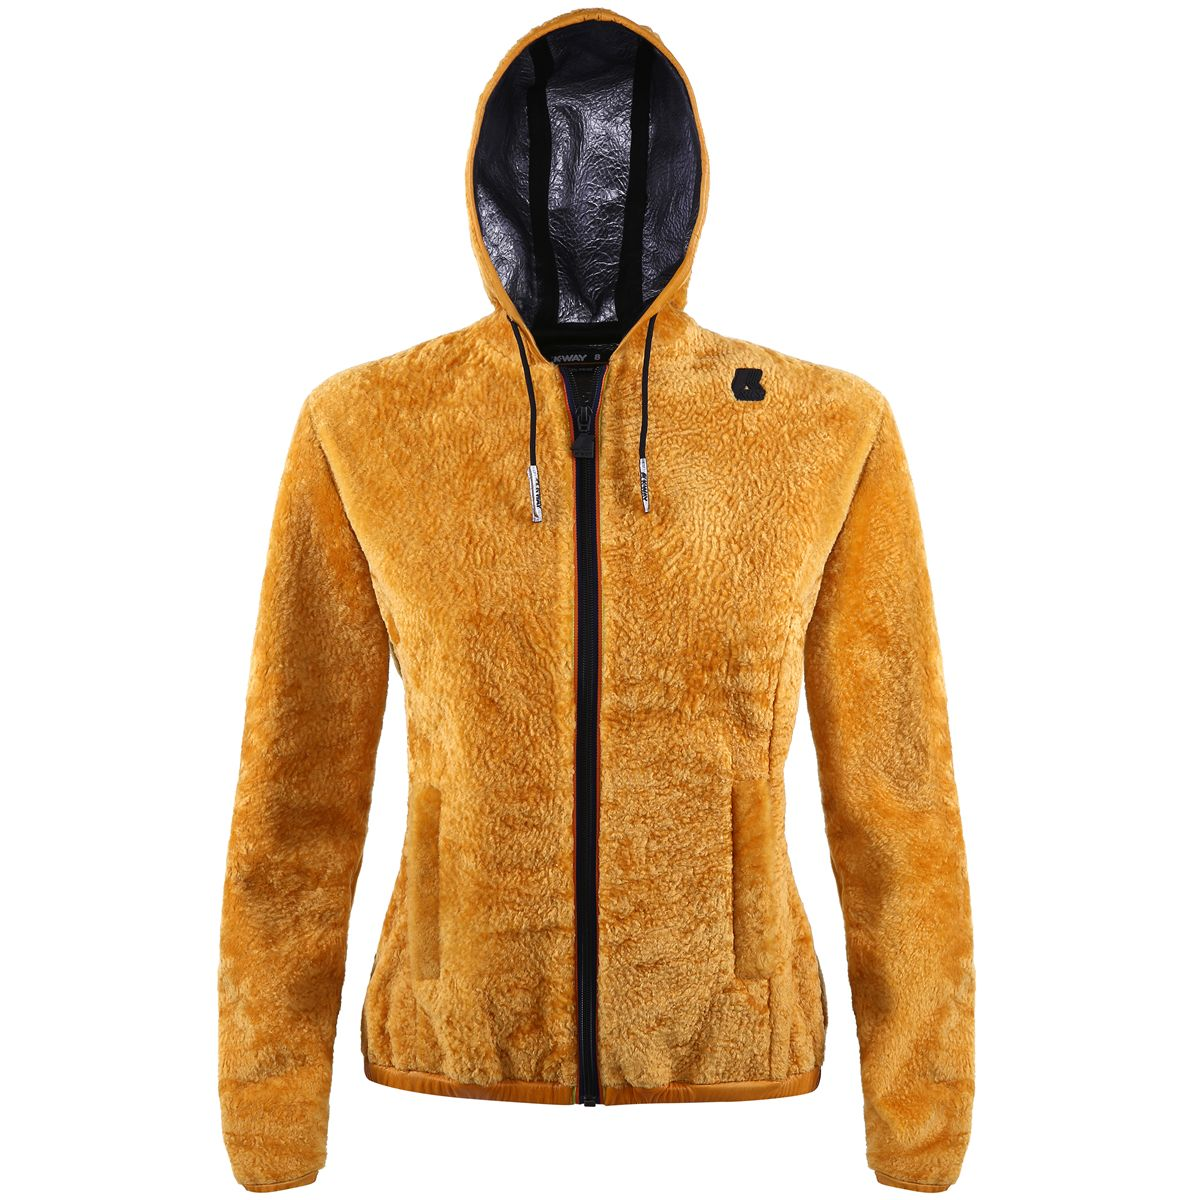 Giubbotto impermeabile K-way donna LILY KL SHEEPSKIN-K005FA0